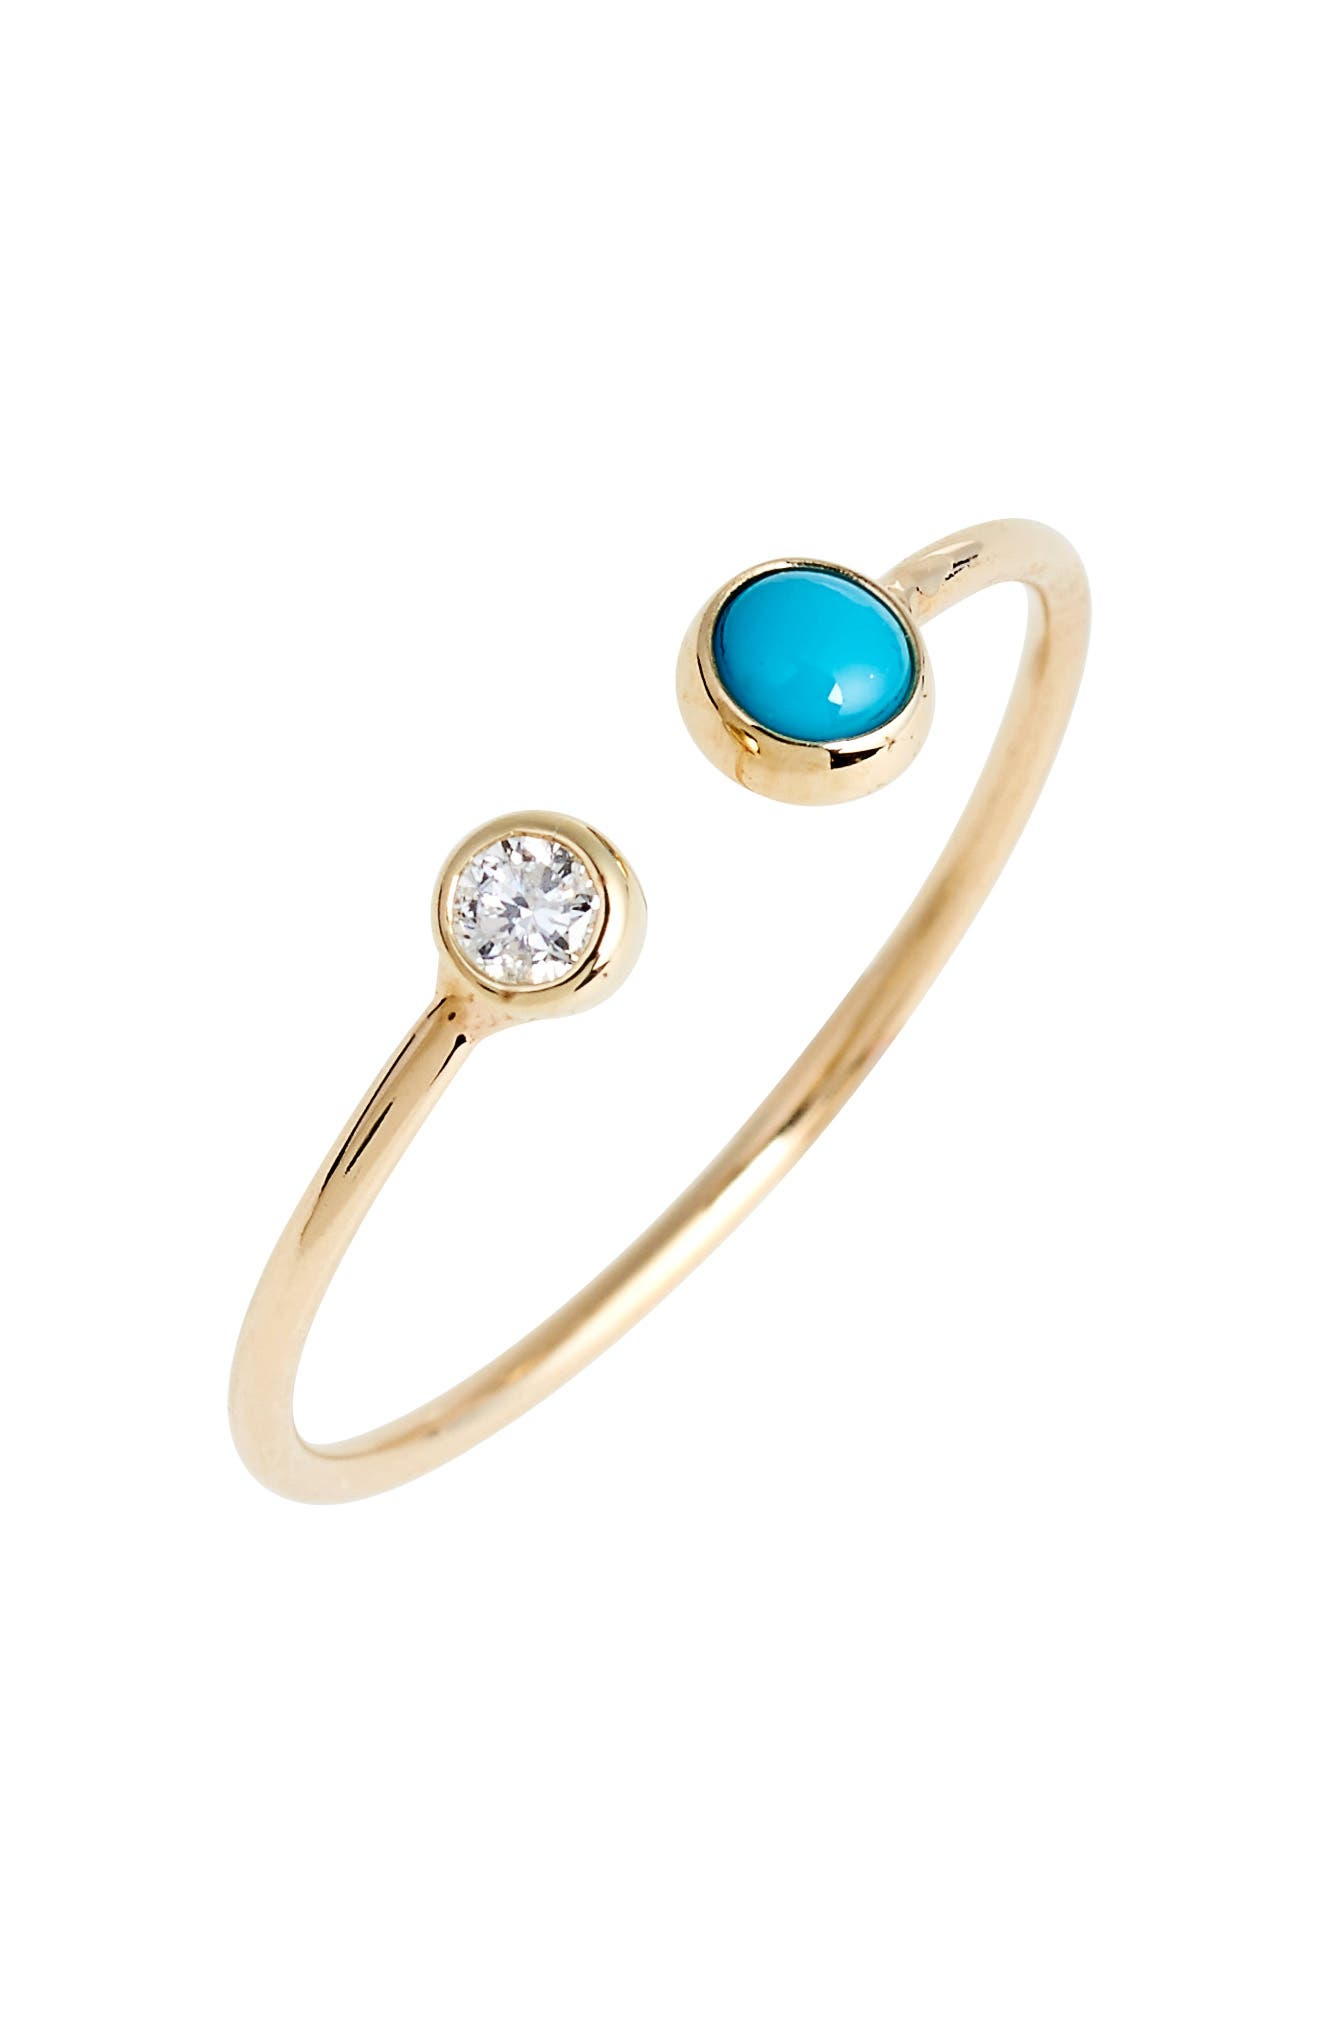 Main Image - Zoë Chicco Diamond & Turquoise Open Stack Ring